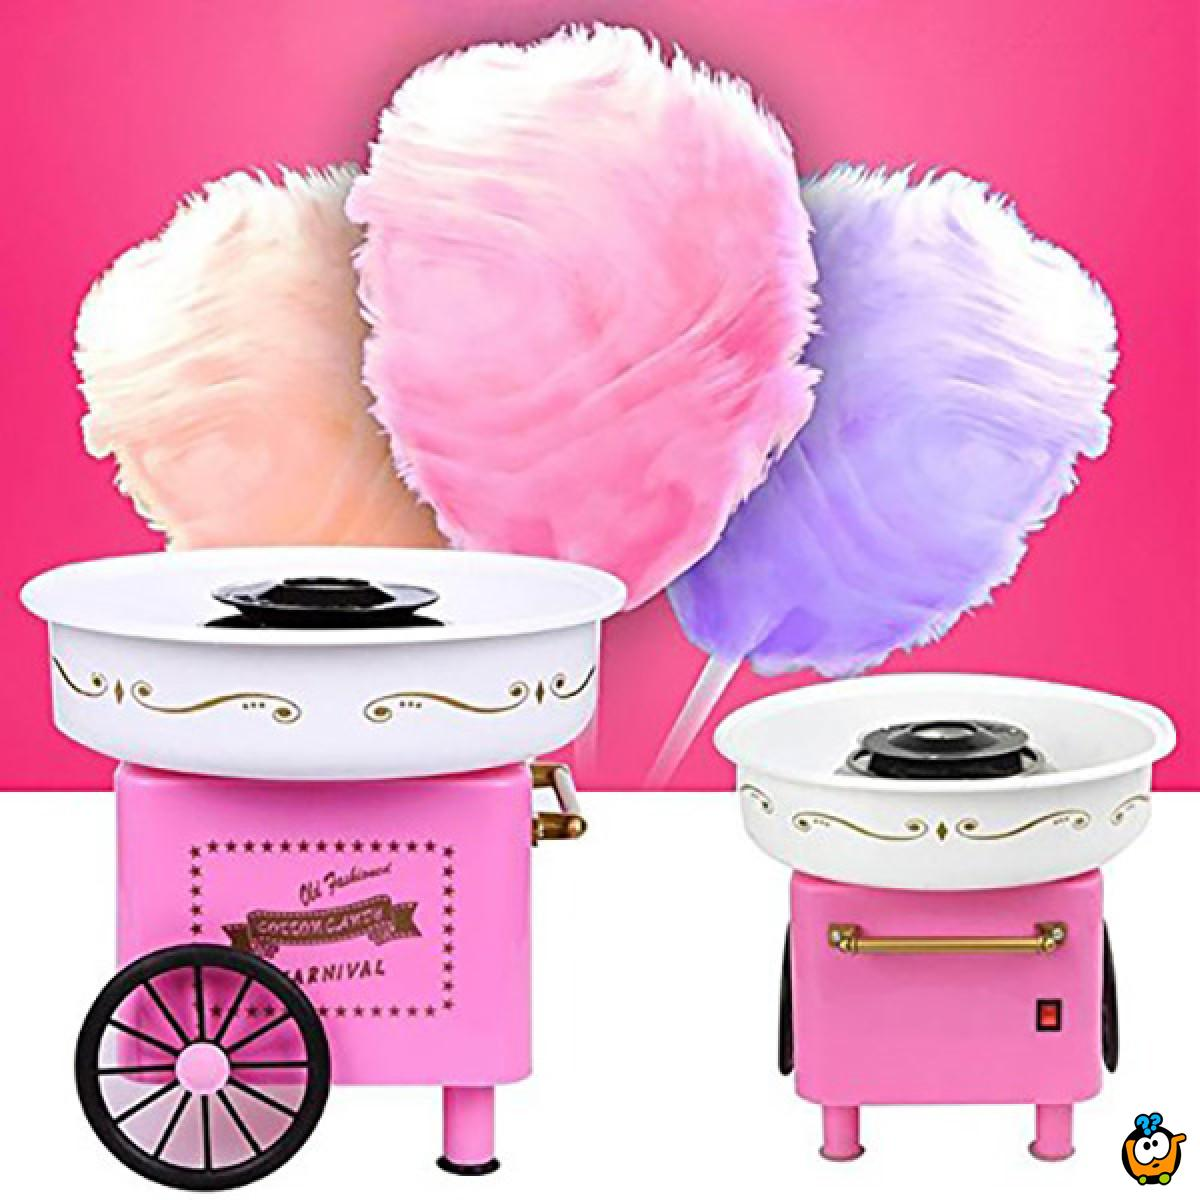 Cotton Candy Maker - Retro aparat za šećernu vunu